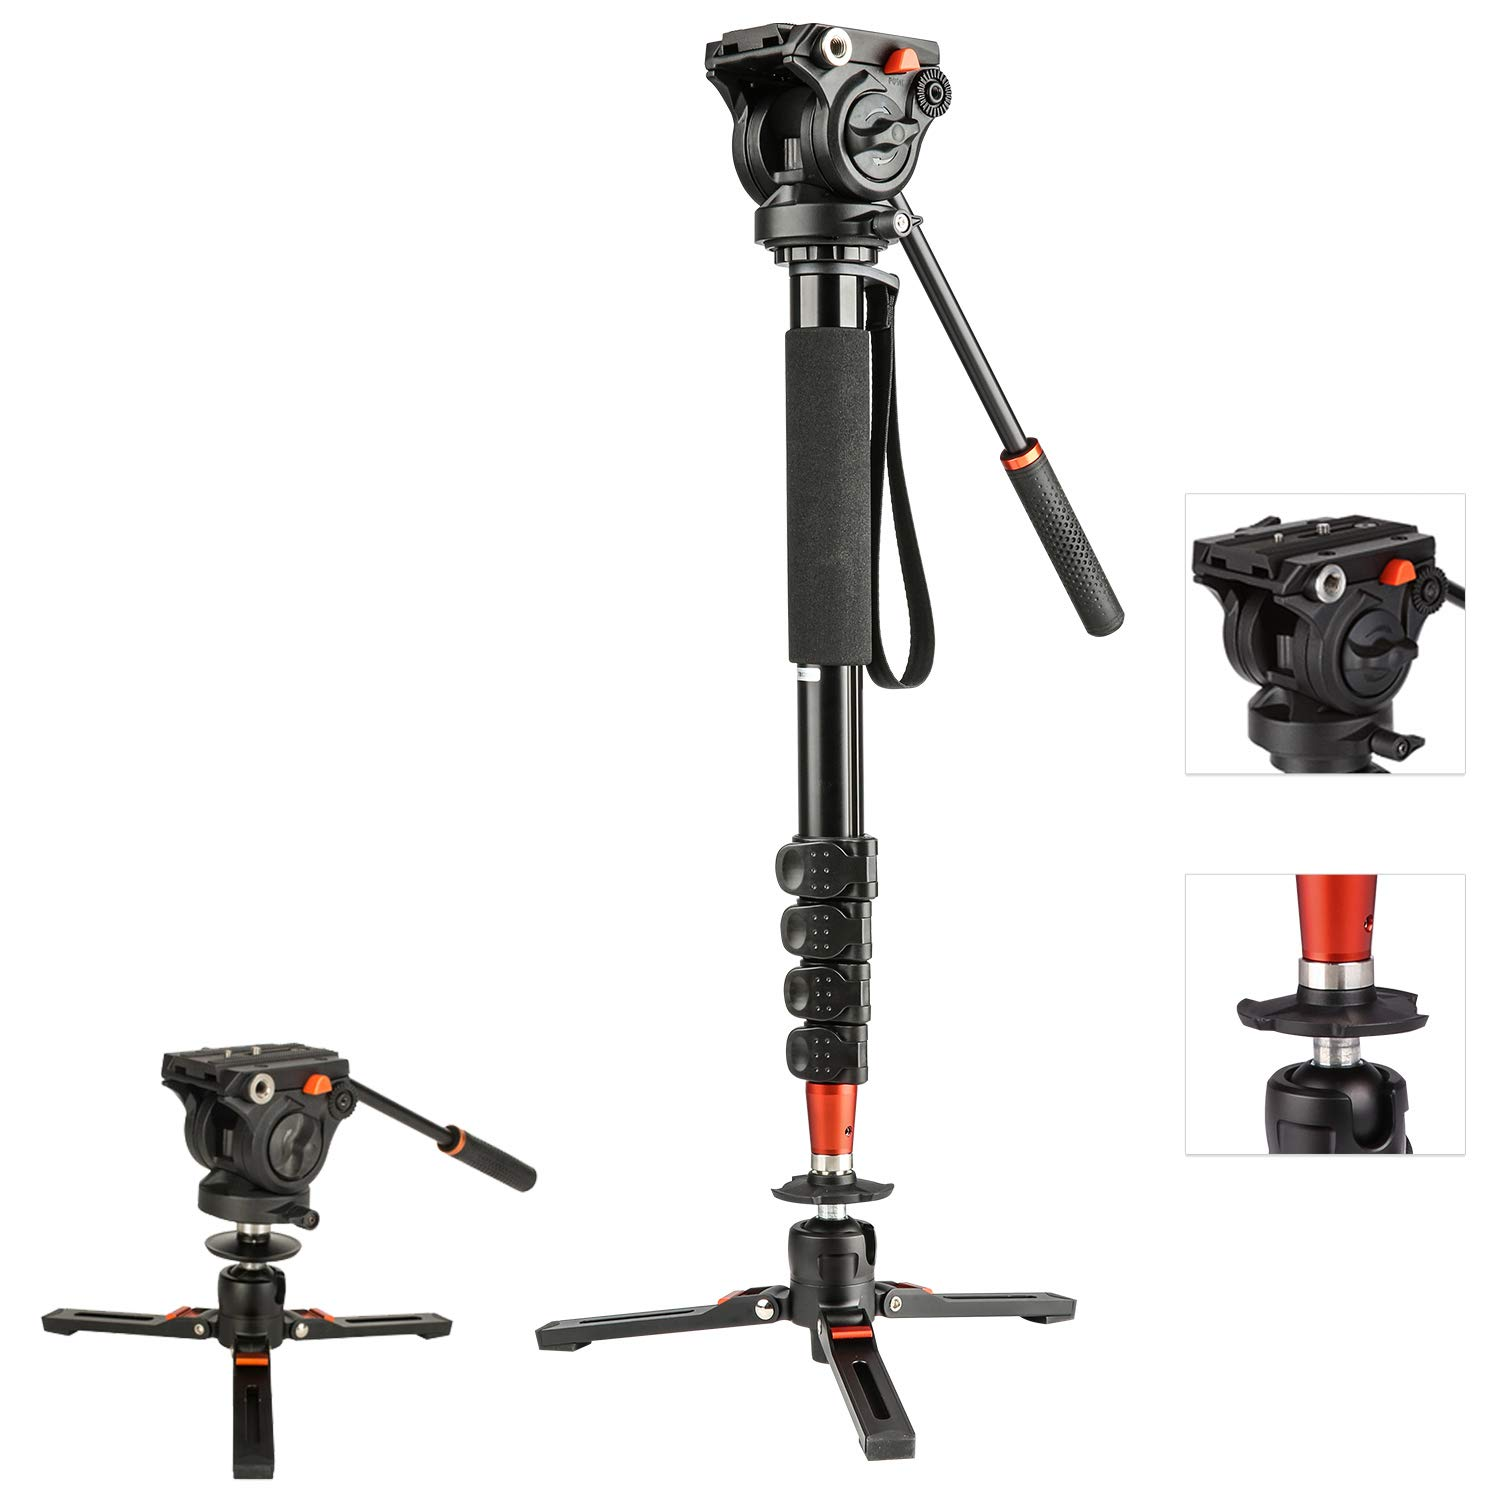 Video Camera Monopod with 3-Leg Tripod Base, 73 inches Aluminum Monopod Leg, Pan Tilt Fluid Head for DSLR Cameras Video Camcorders, Including Carrying Bag by FANSHANG